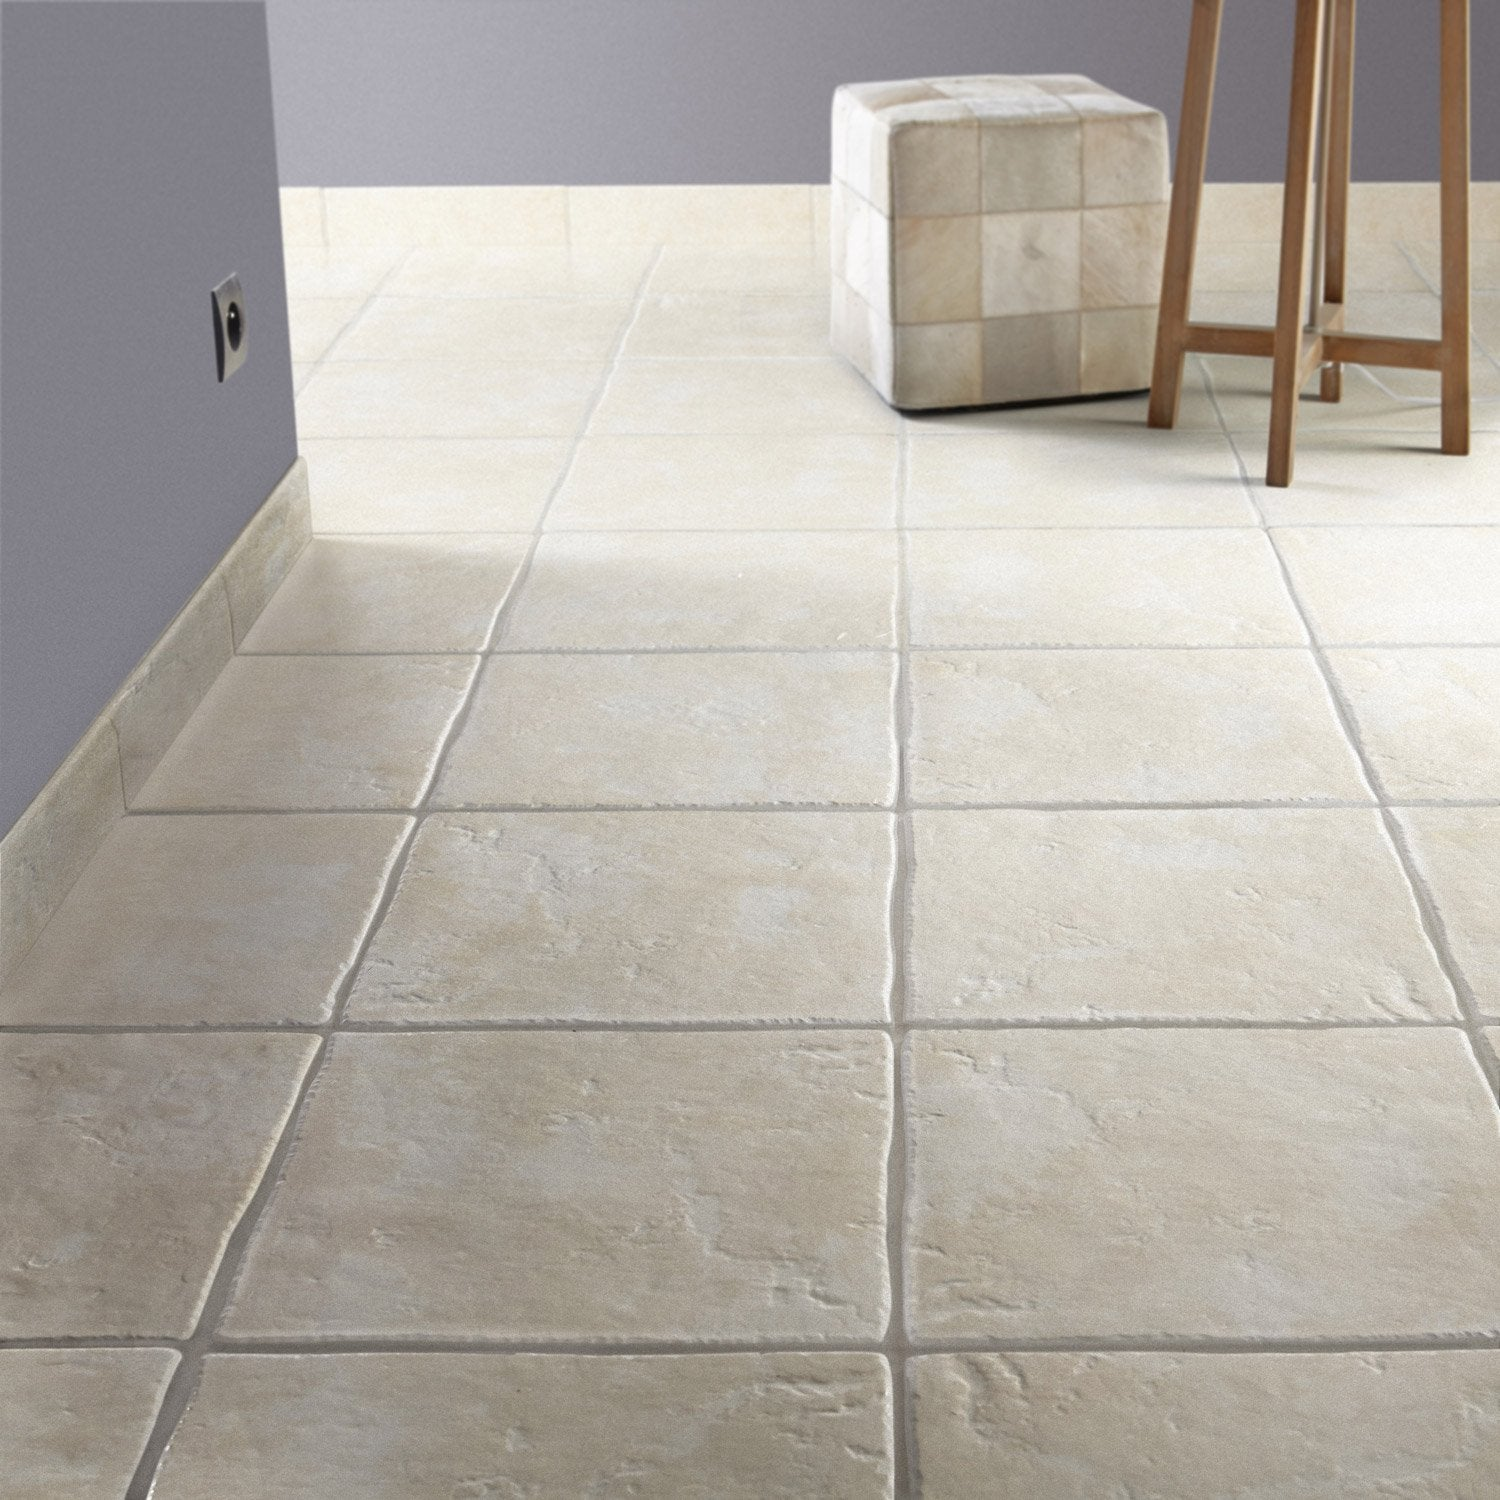 Carrelage cuisine imitation pierre for Carrelage beige 30x30